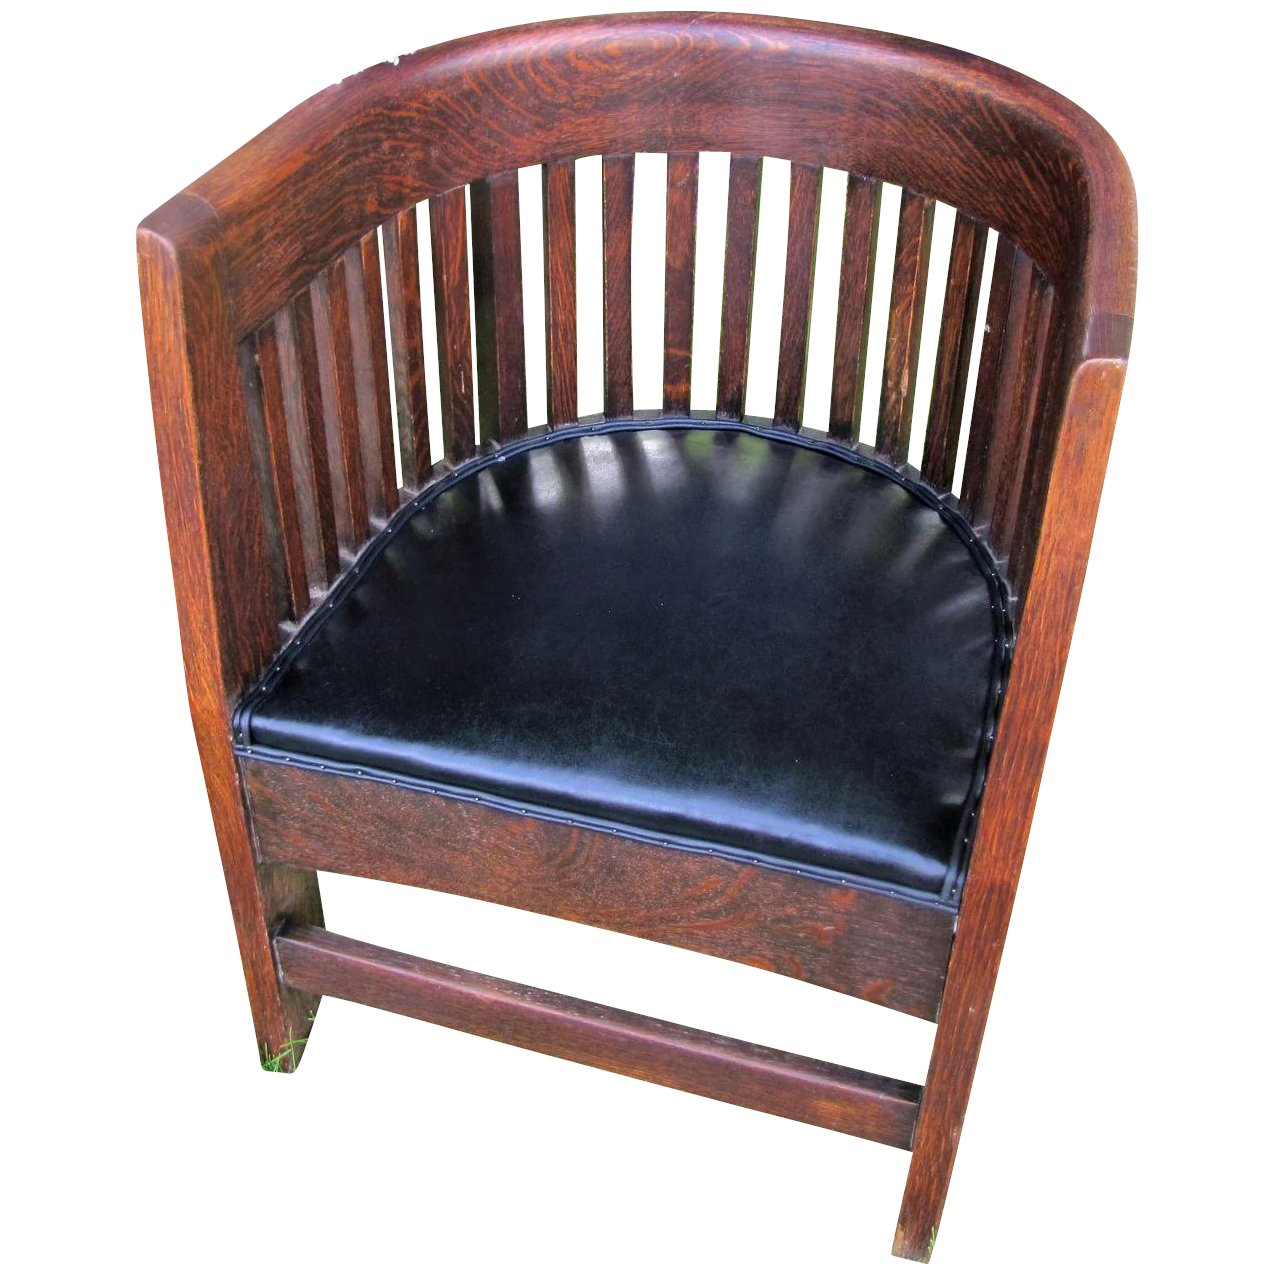 Click to expand - Antique Arts & Crafts Plail Brothers Barrel Chair W4784b : Antique